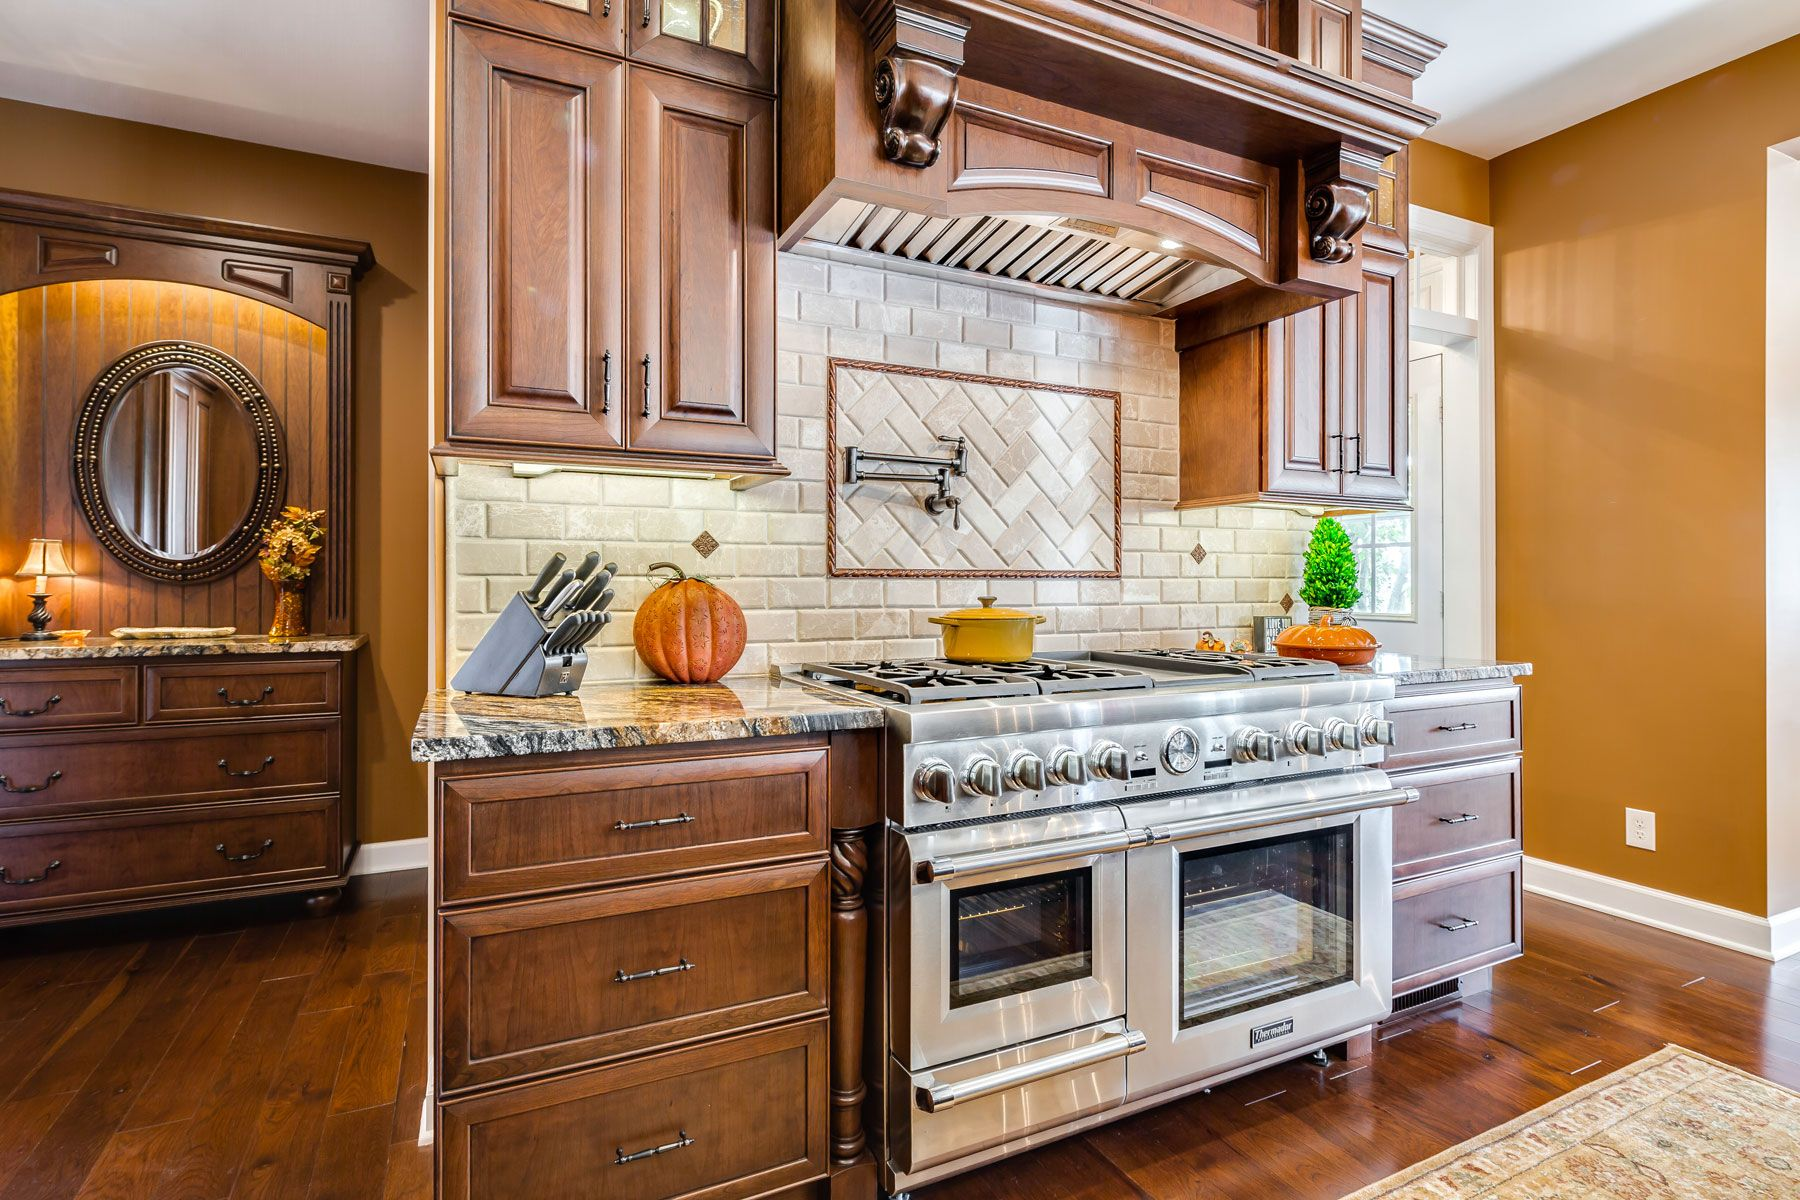 Designed by Linda Petock of Integrity Kitchen & Bath, this ...